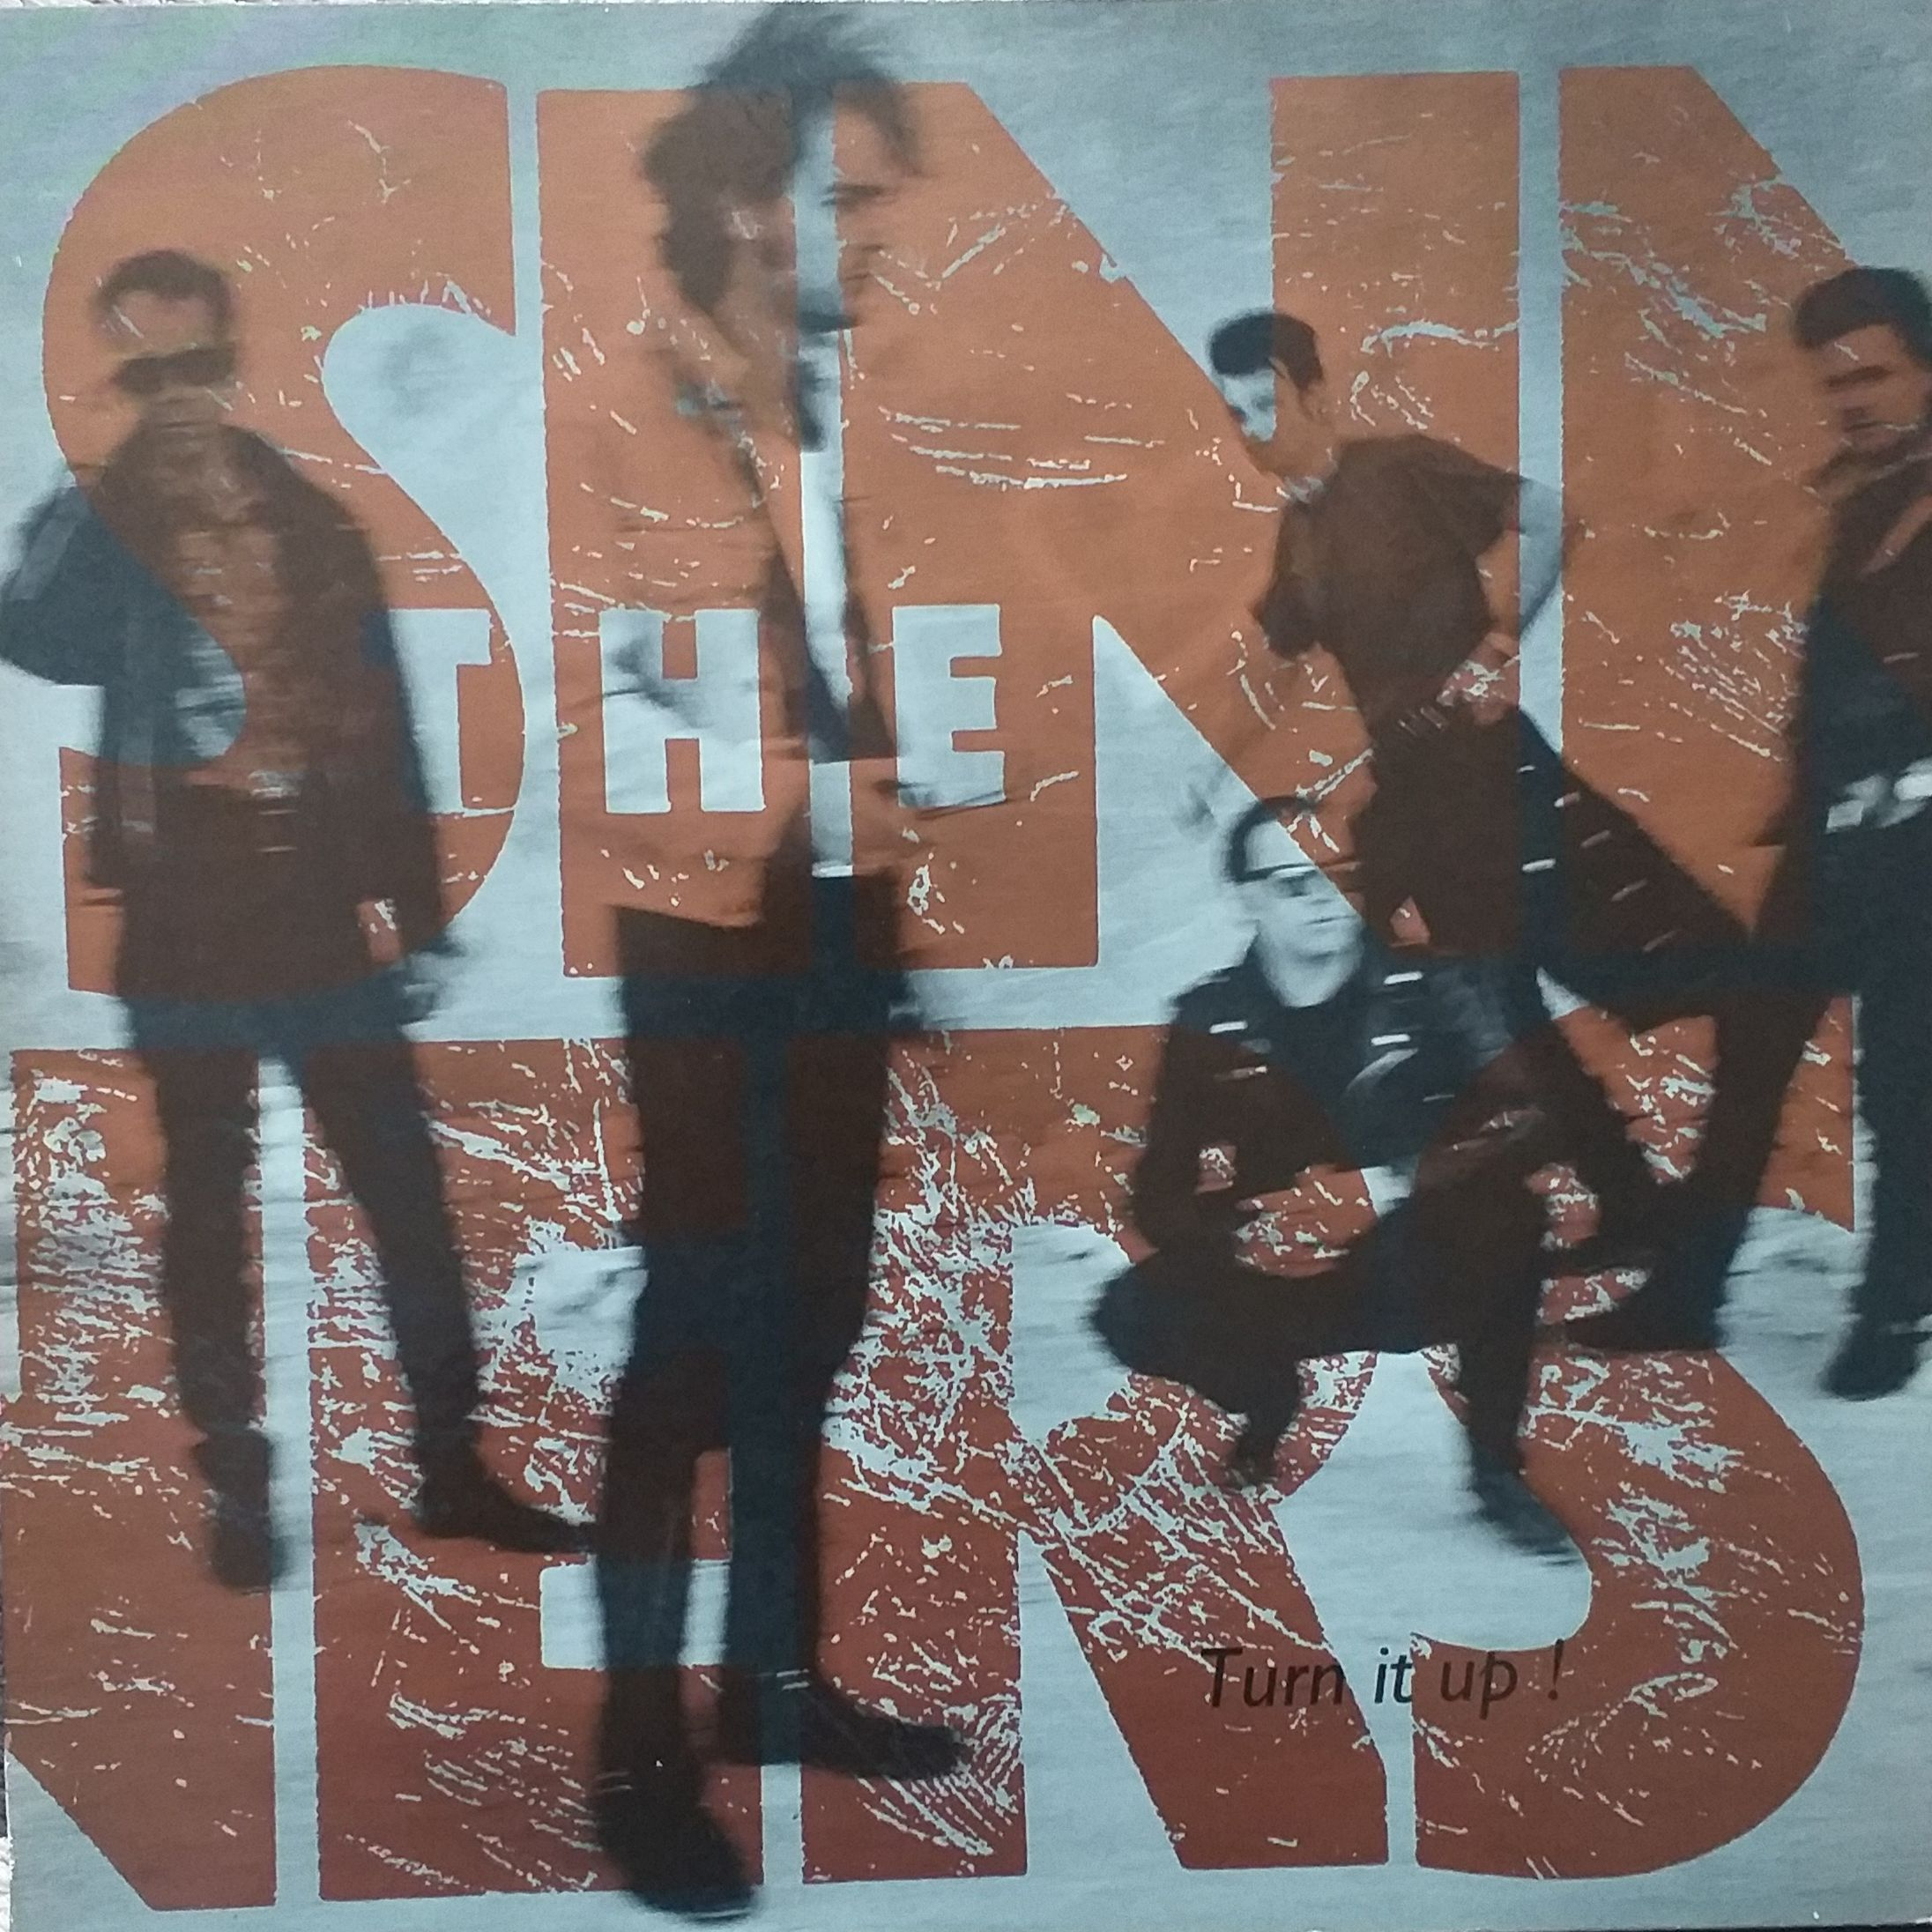 The Sinners Turn it up! LP undefined